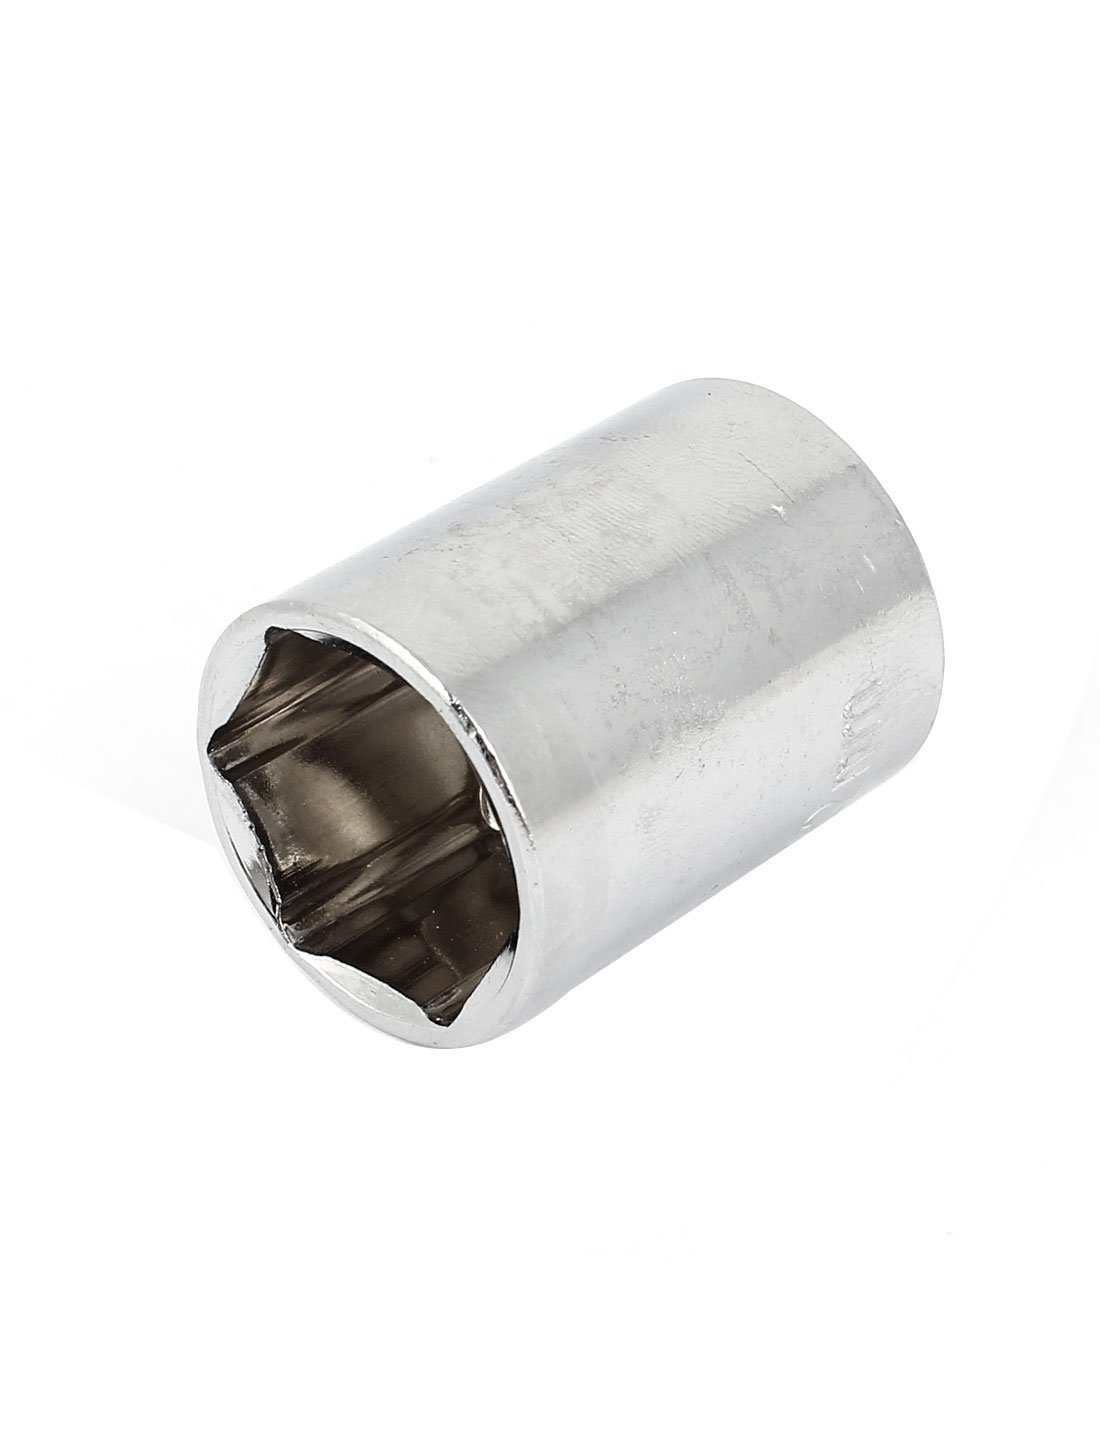 Uxcell a15013100ux0120 1//2 Drive 22mm Chrome-vanadium Steel 6 Point Hex Metric Socket